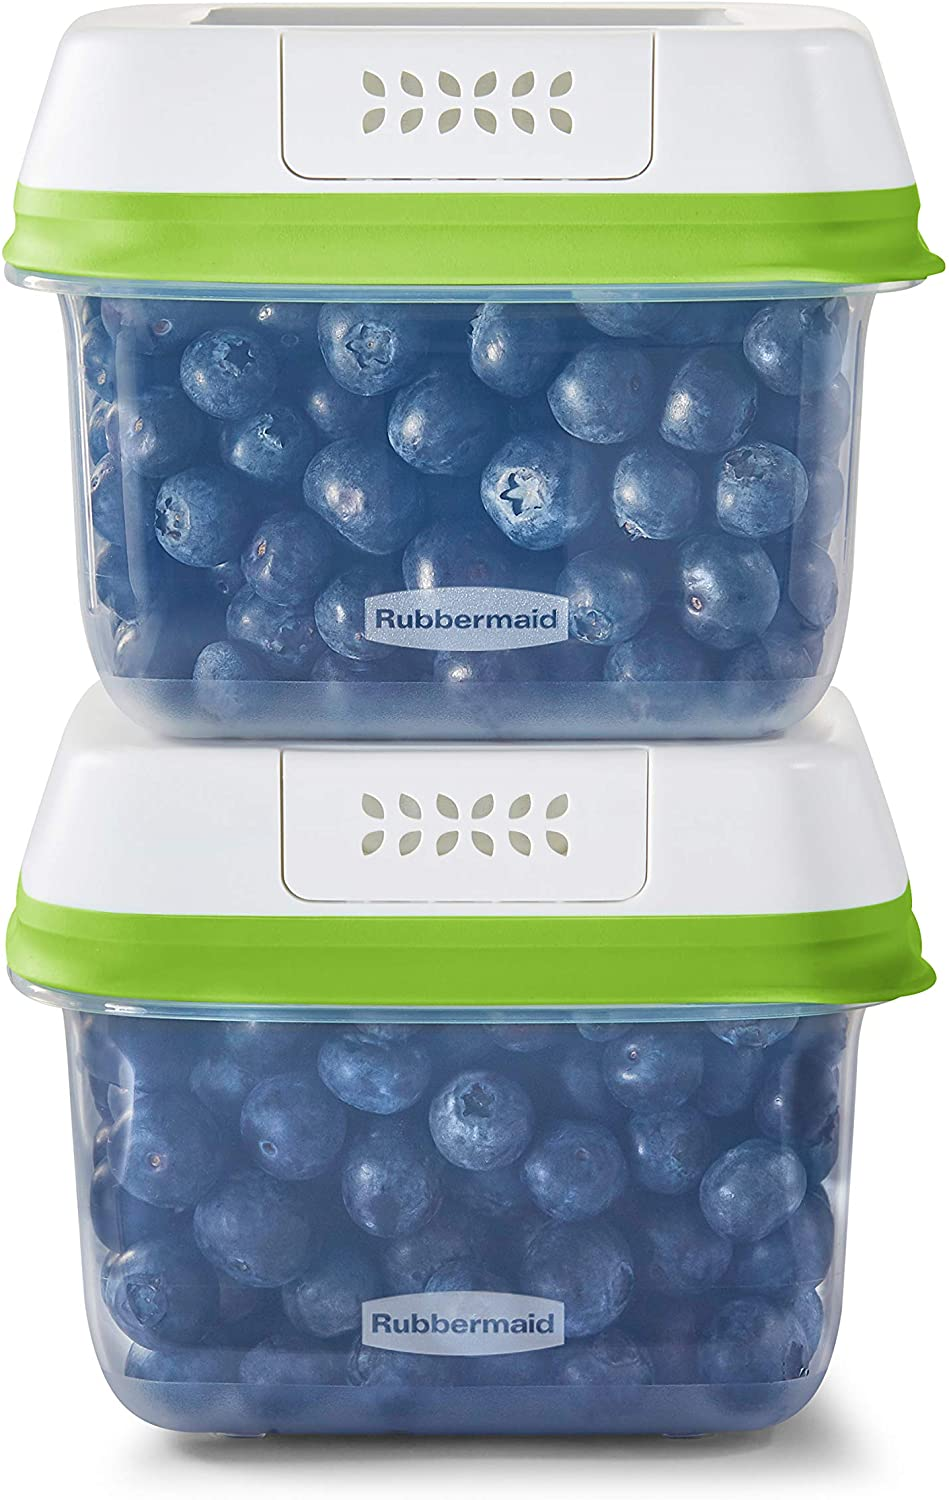 Rubbermaid 2114738 FreshWorks Saver, Medium Short Produce Storage Containers, 2-Pack, 4.6 Cup, Clear